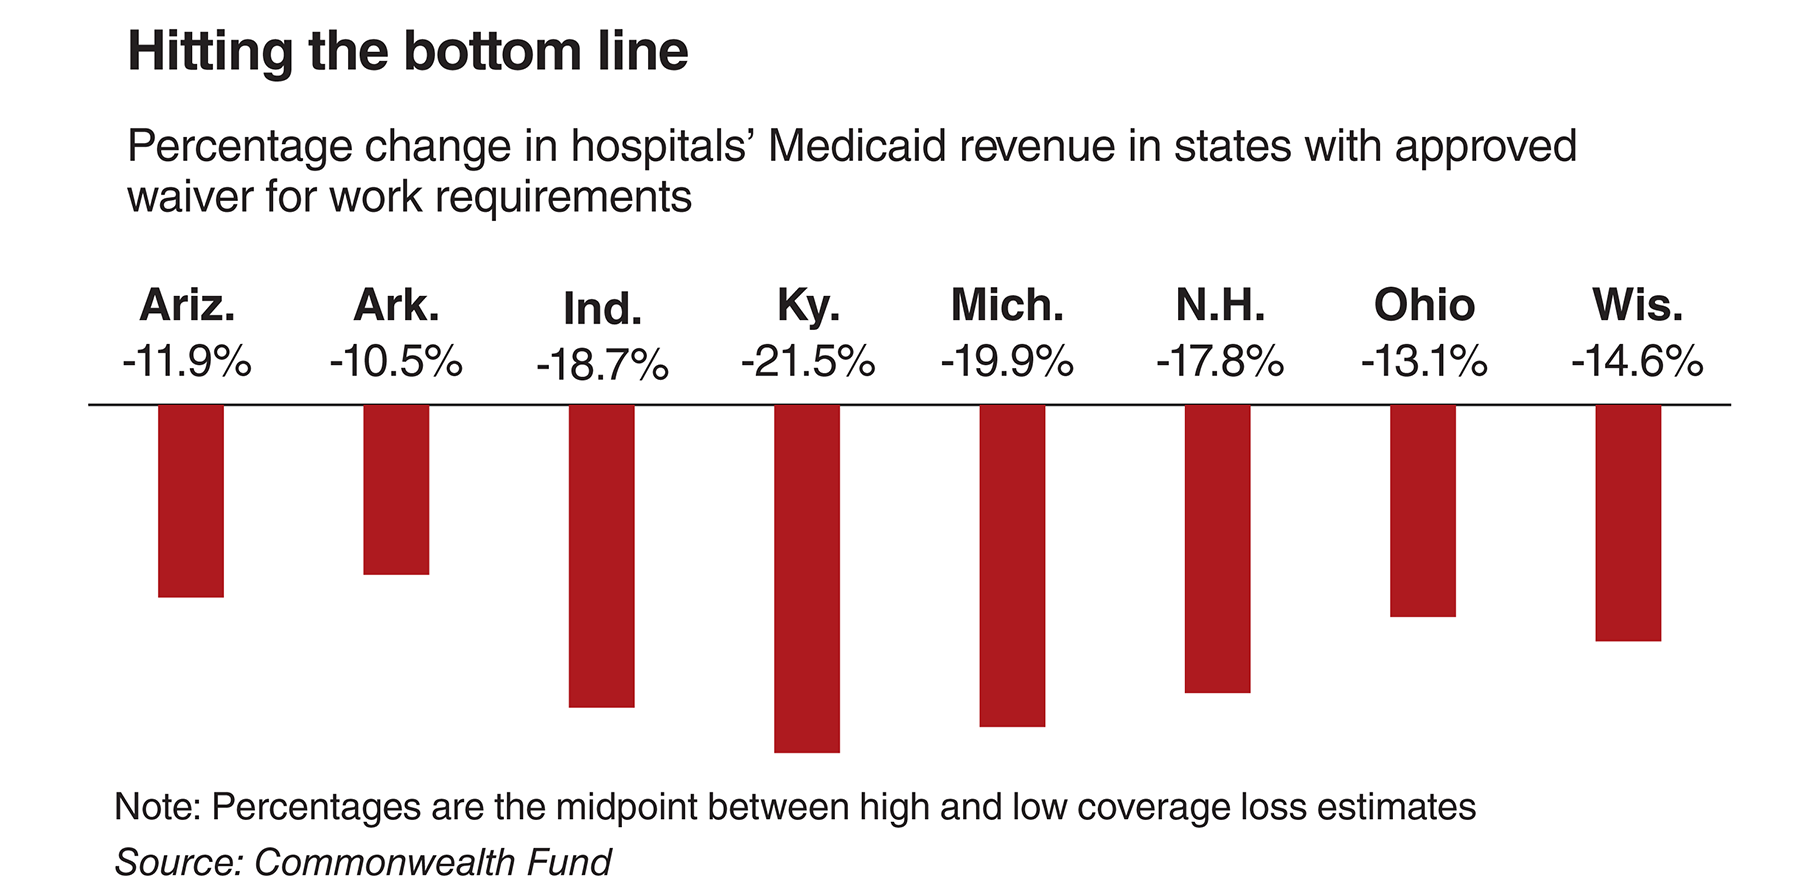 Percentage change in hospitals' Medicaid revenue